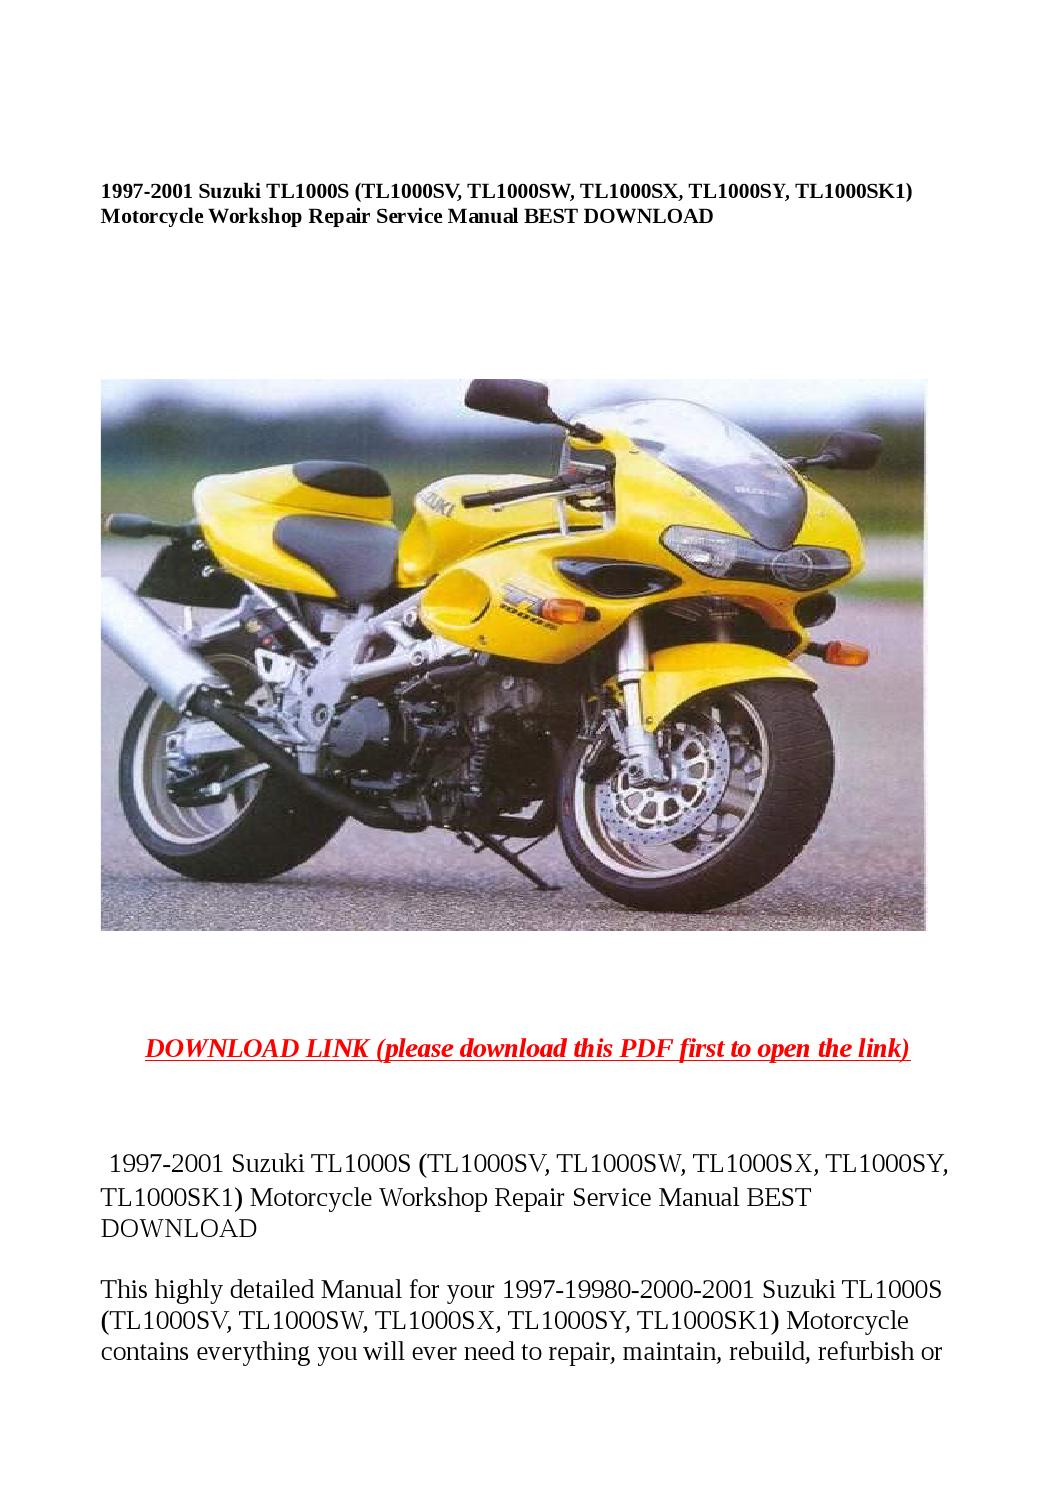 1997 2001 suzuki tl1000s (tl1000sv, tl1000sw, tl1000sx, tl1000sy,  tl1000sk1) motorcycle workshop rep by Dora tang - issuu